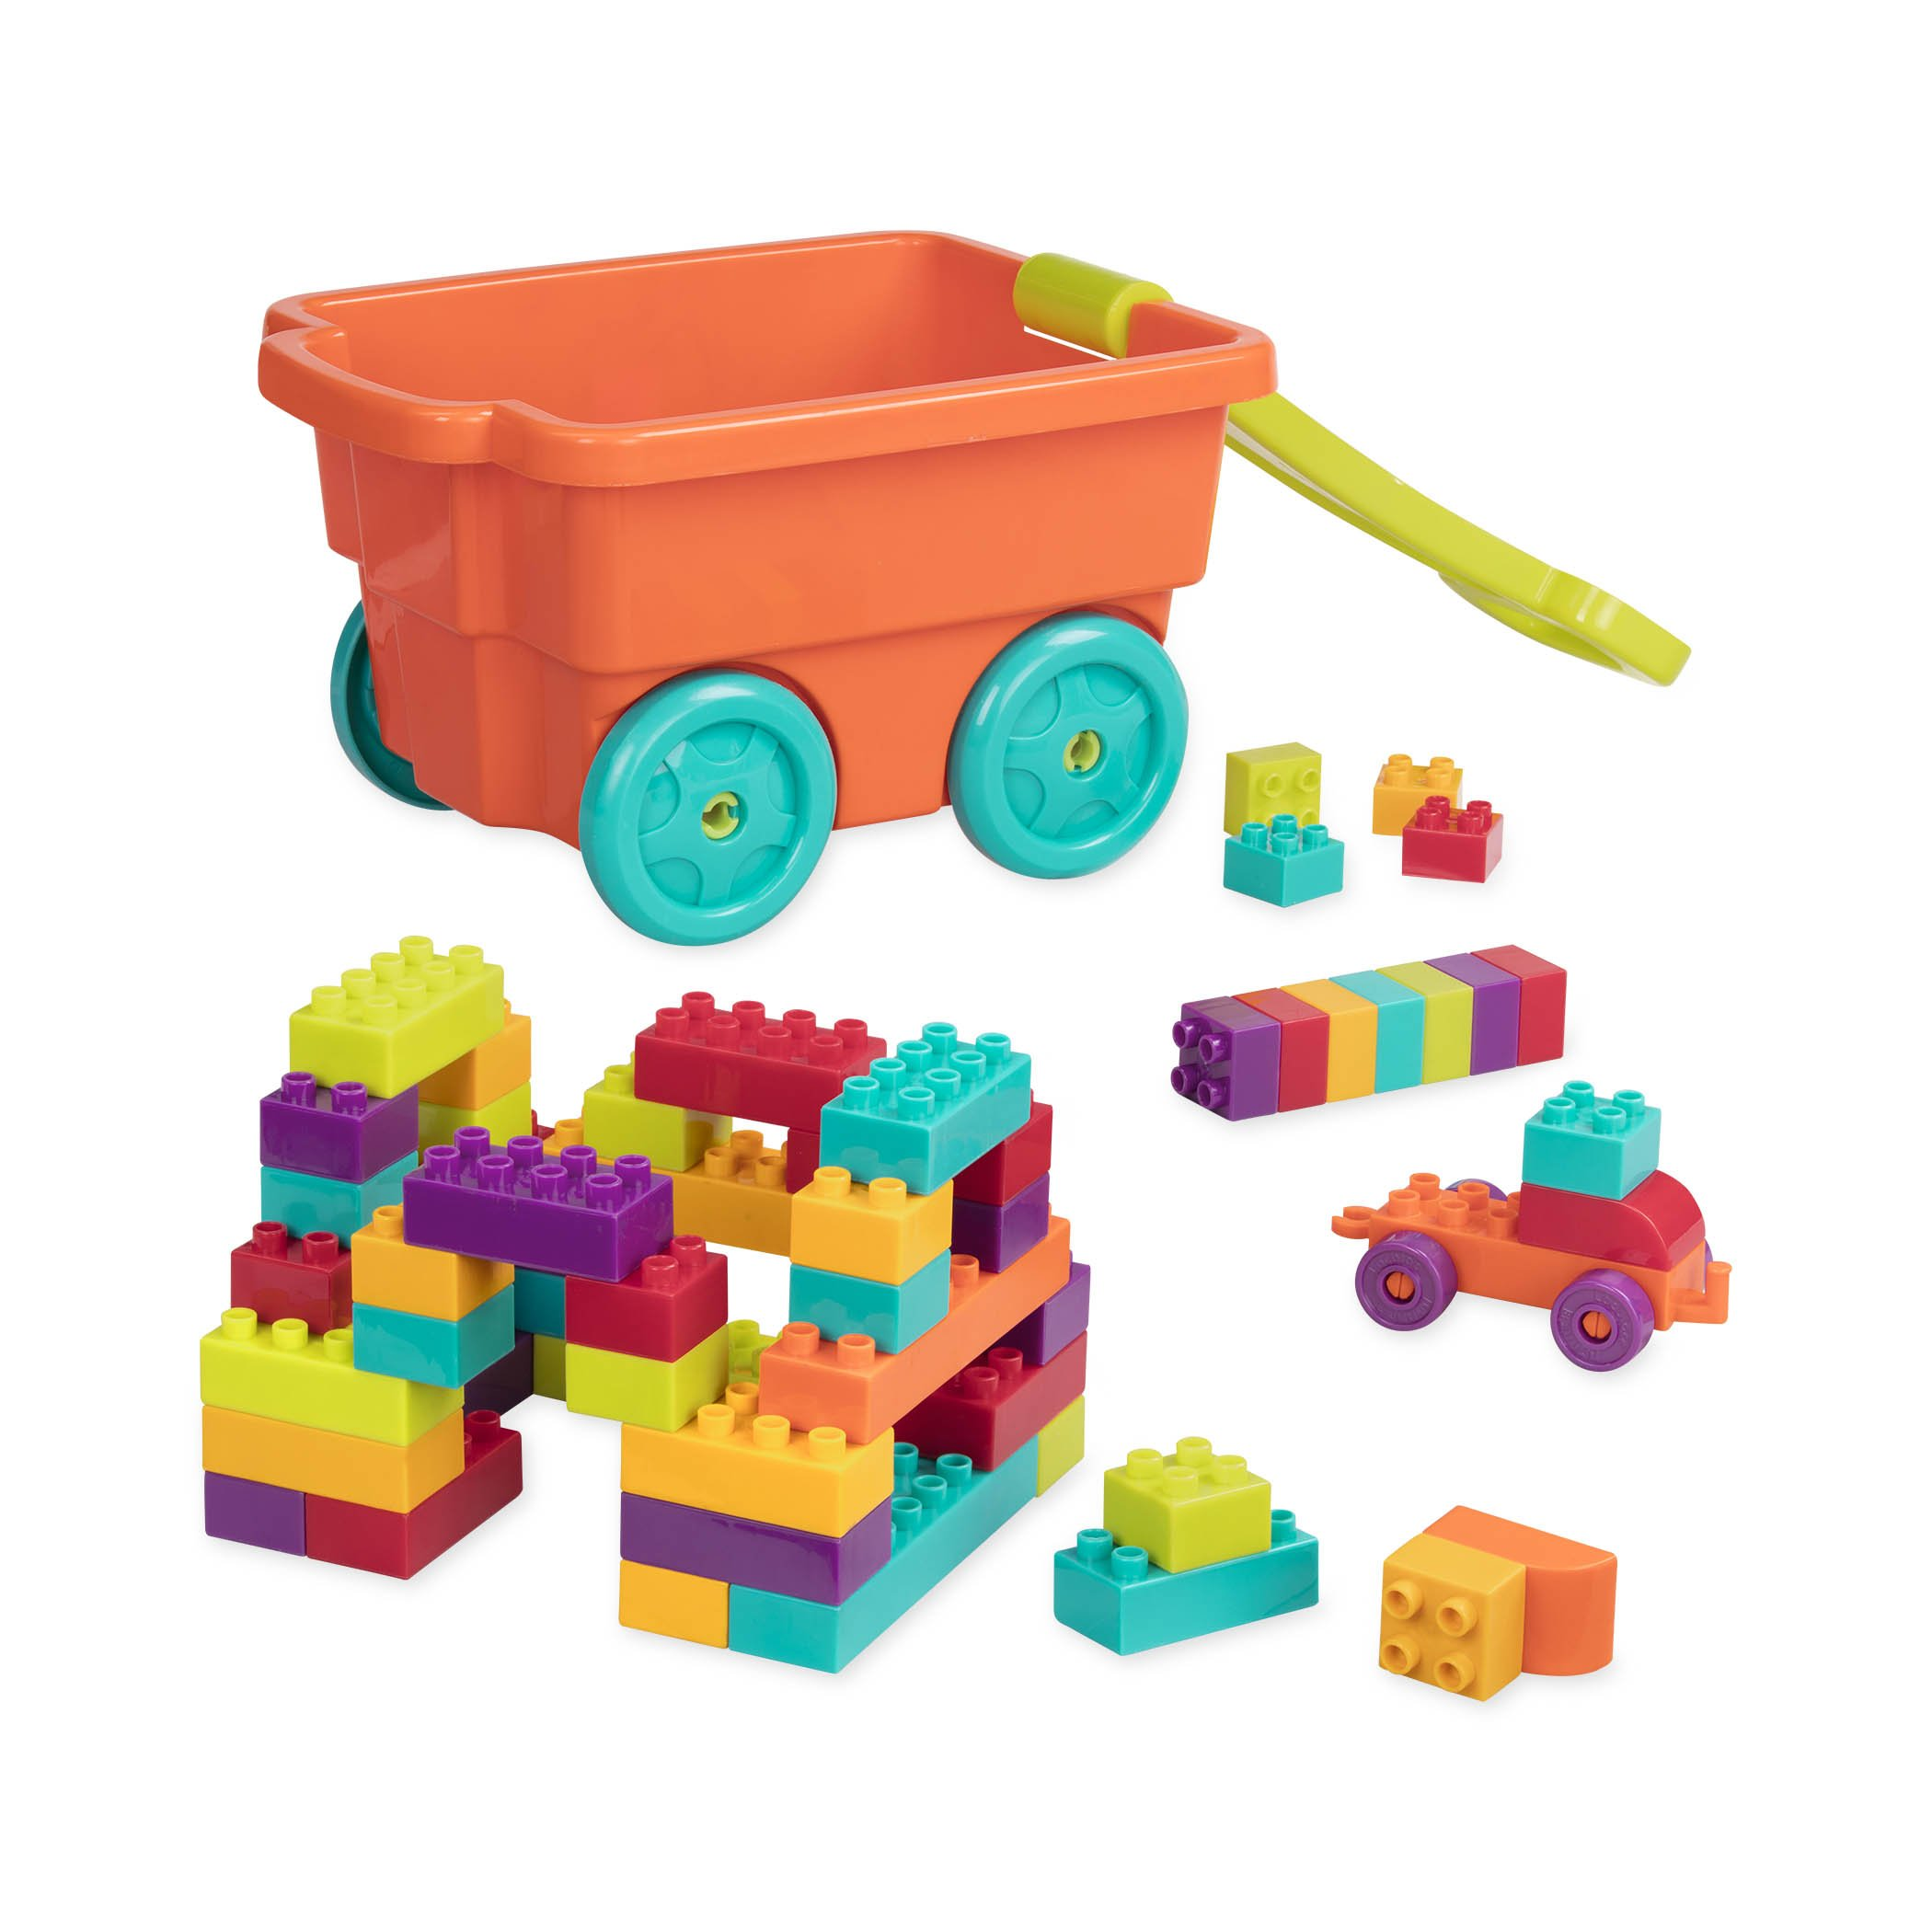 Amazon Battat Sort and Stack Learning Toy for Kids 19 pieces